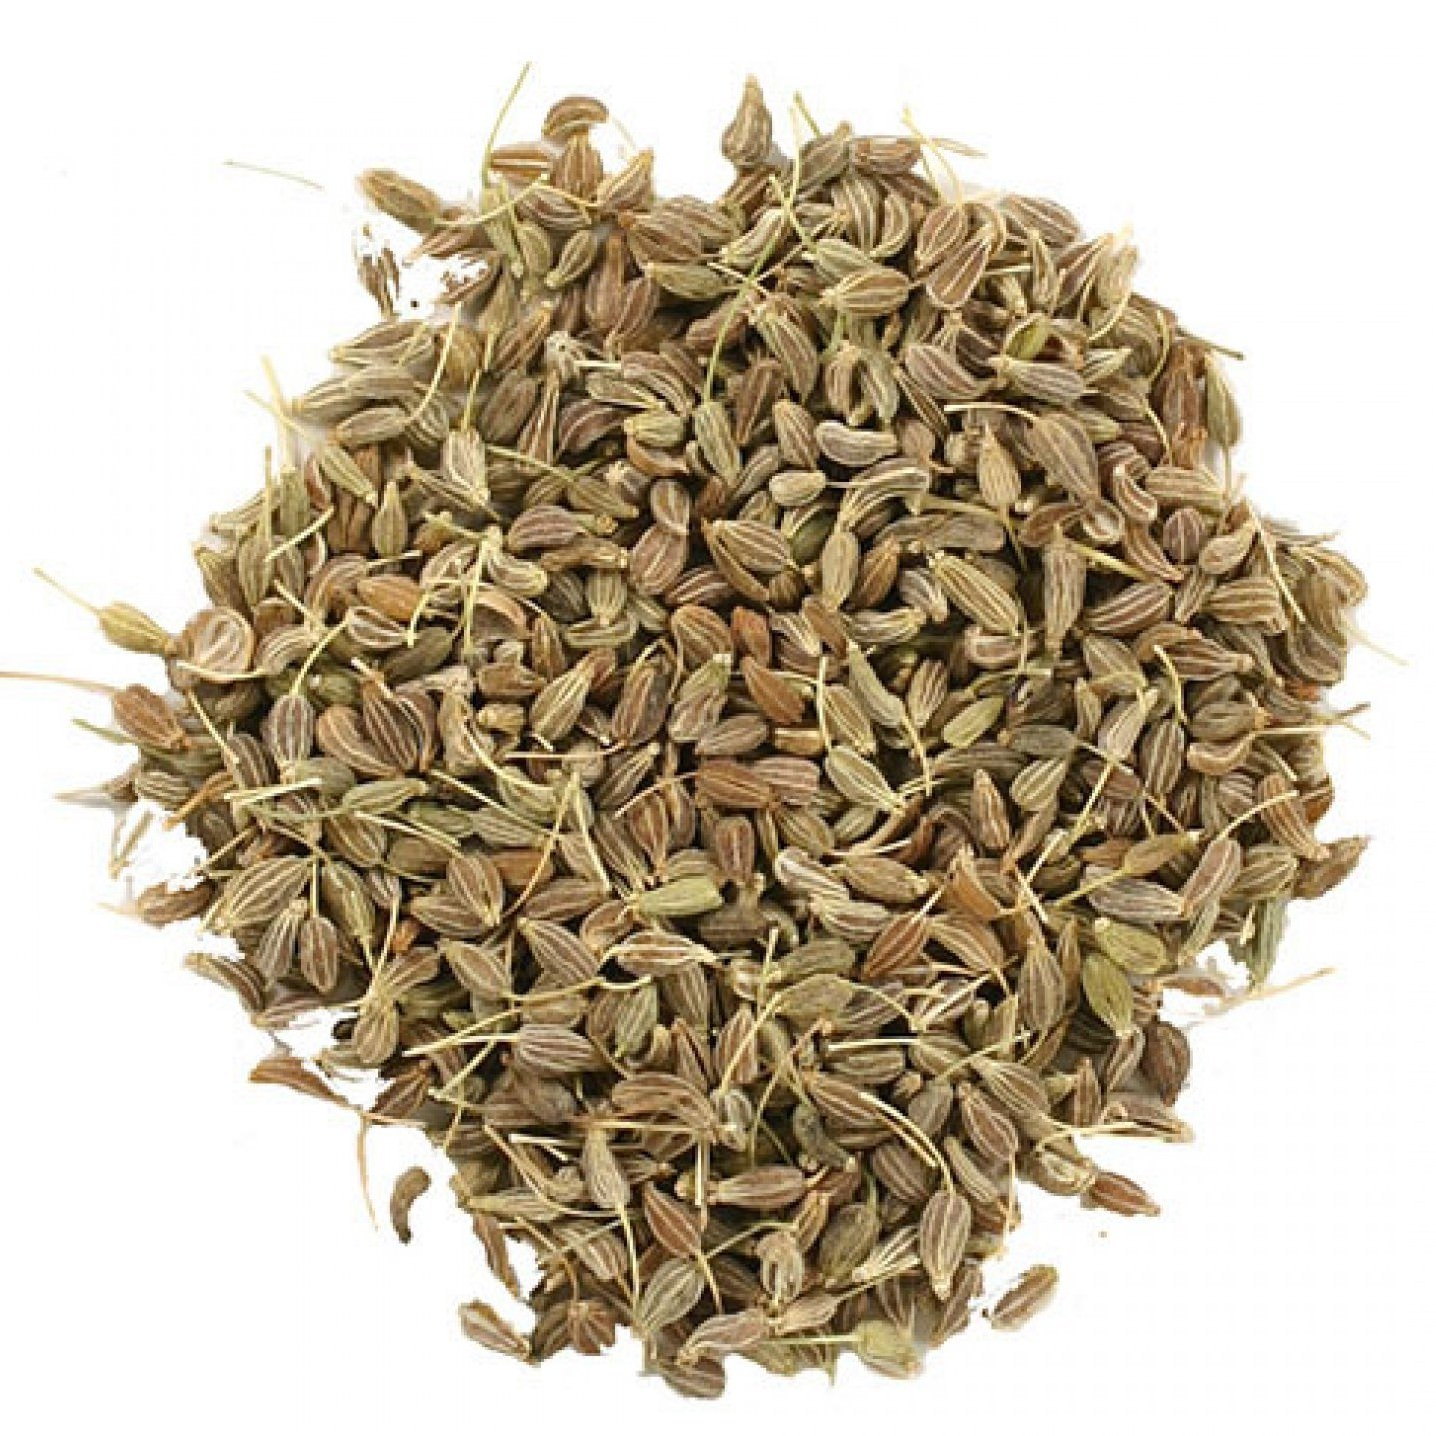 Anise Oil | Organic Anise Seed Essential Oil - Nature In Bottle